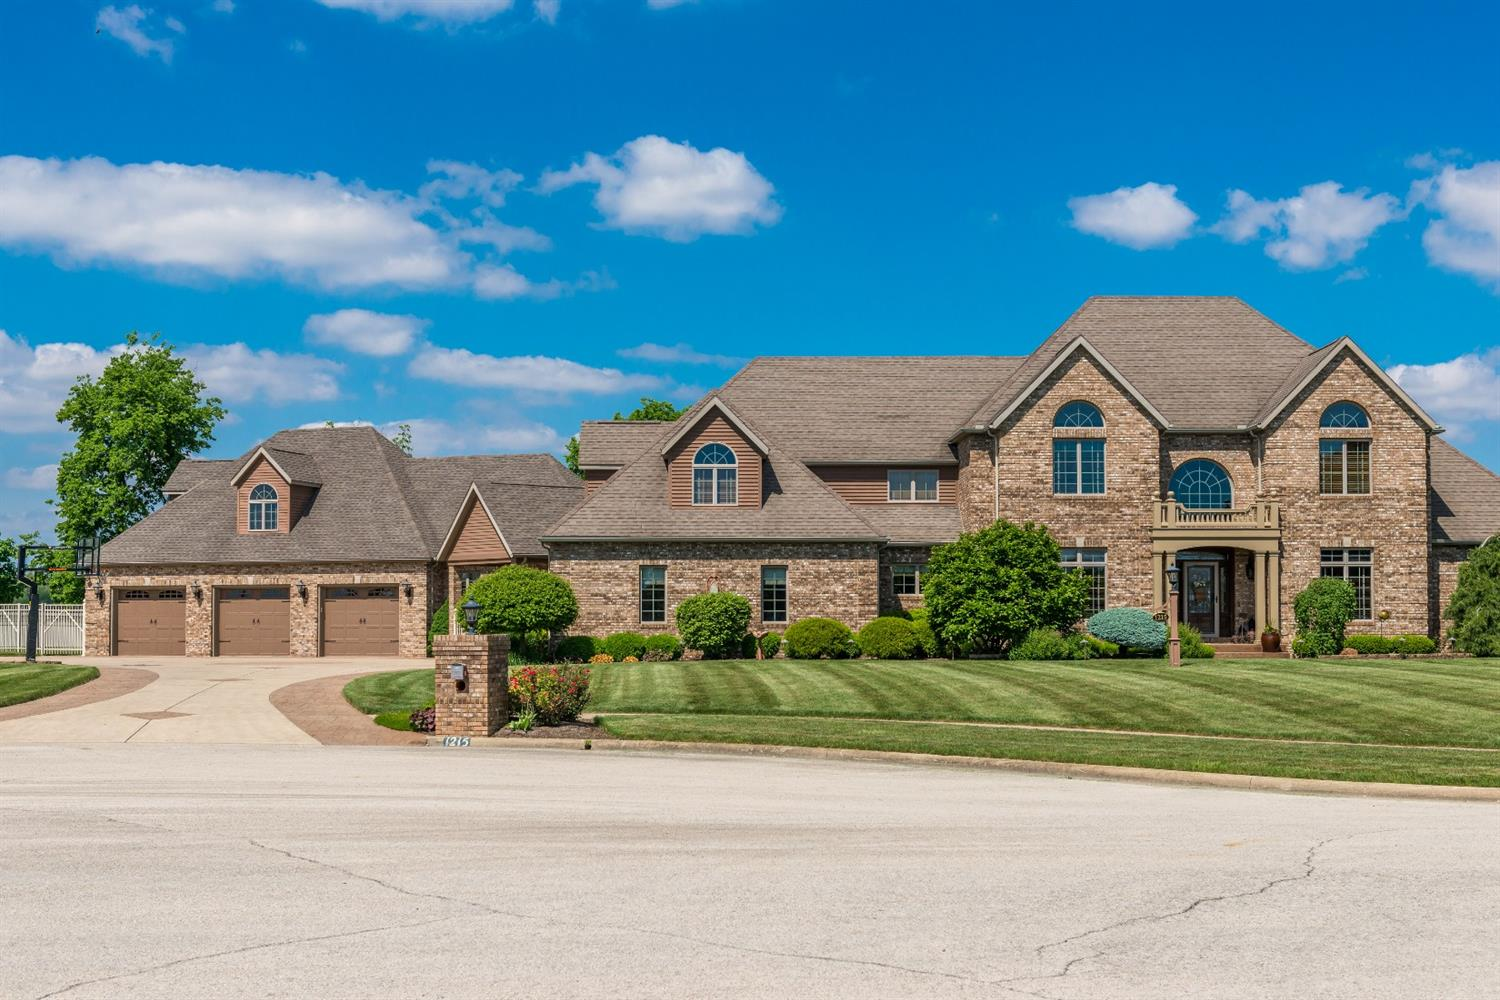 1215 Storybrook Dr Fayette County , OH